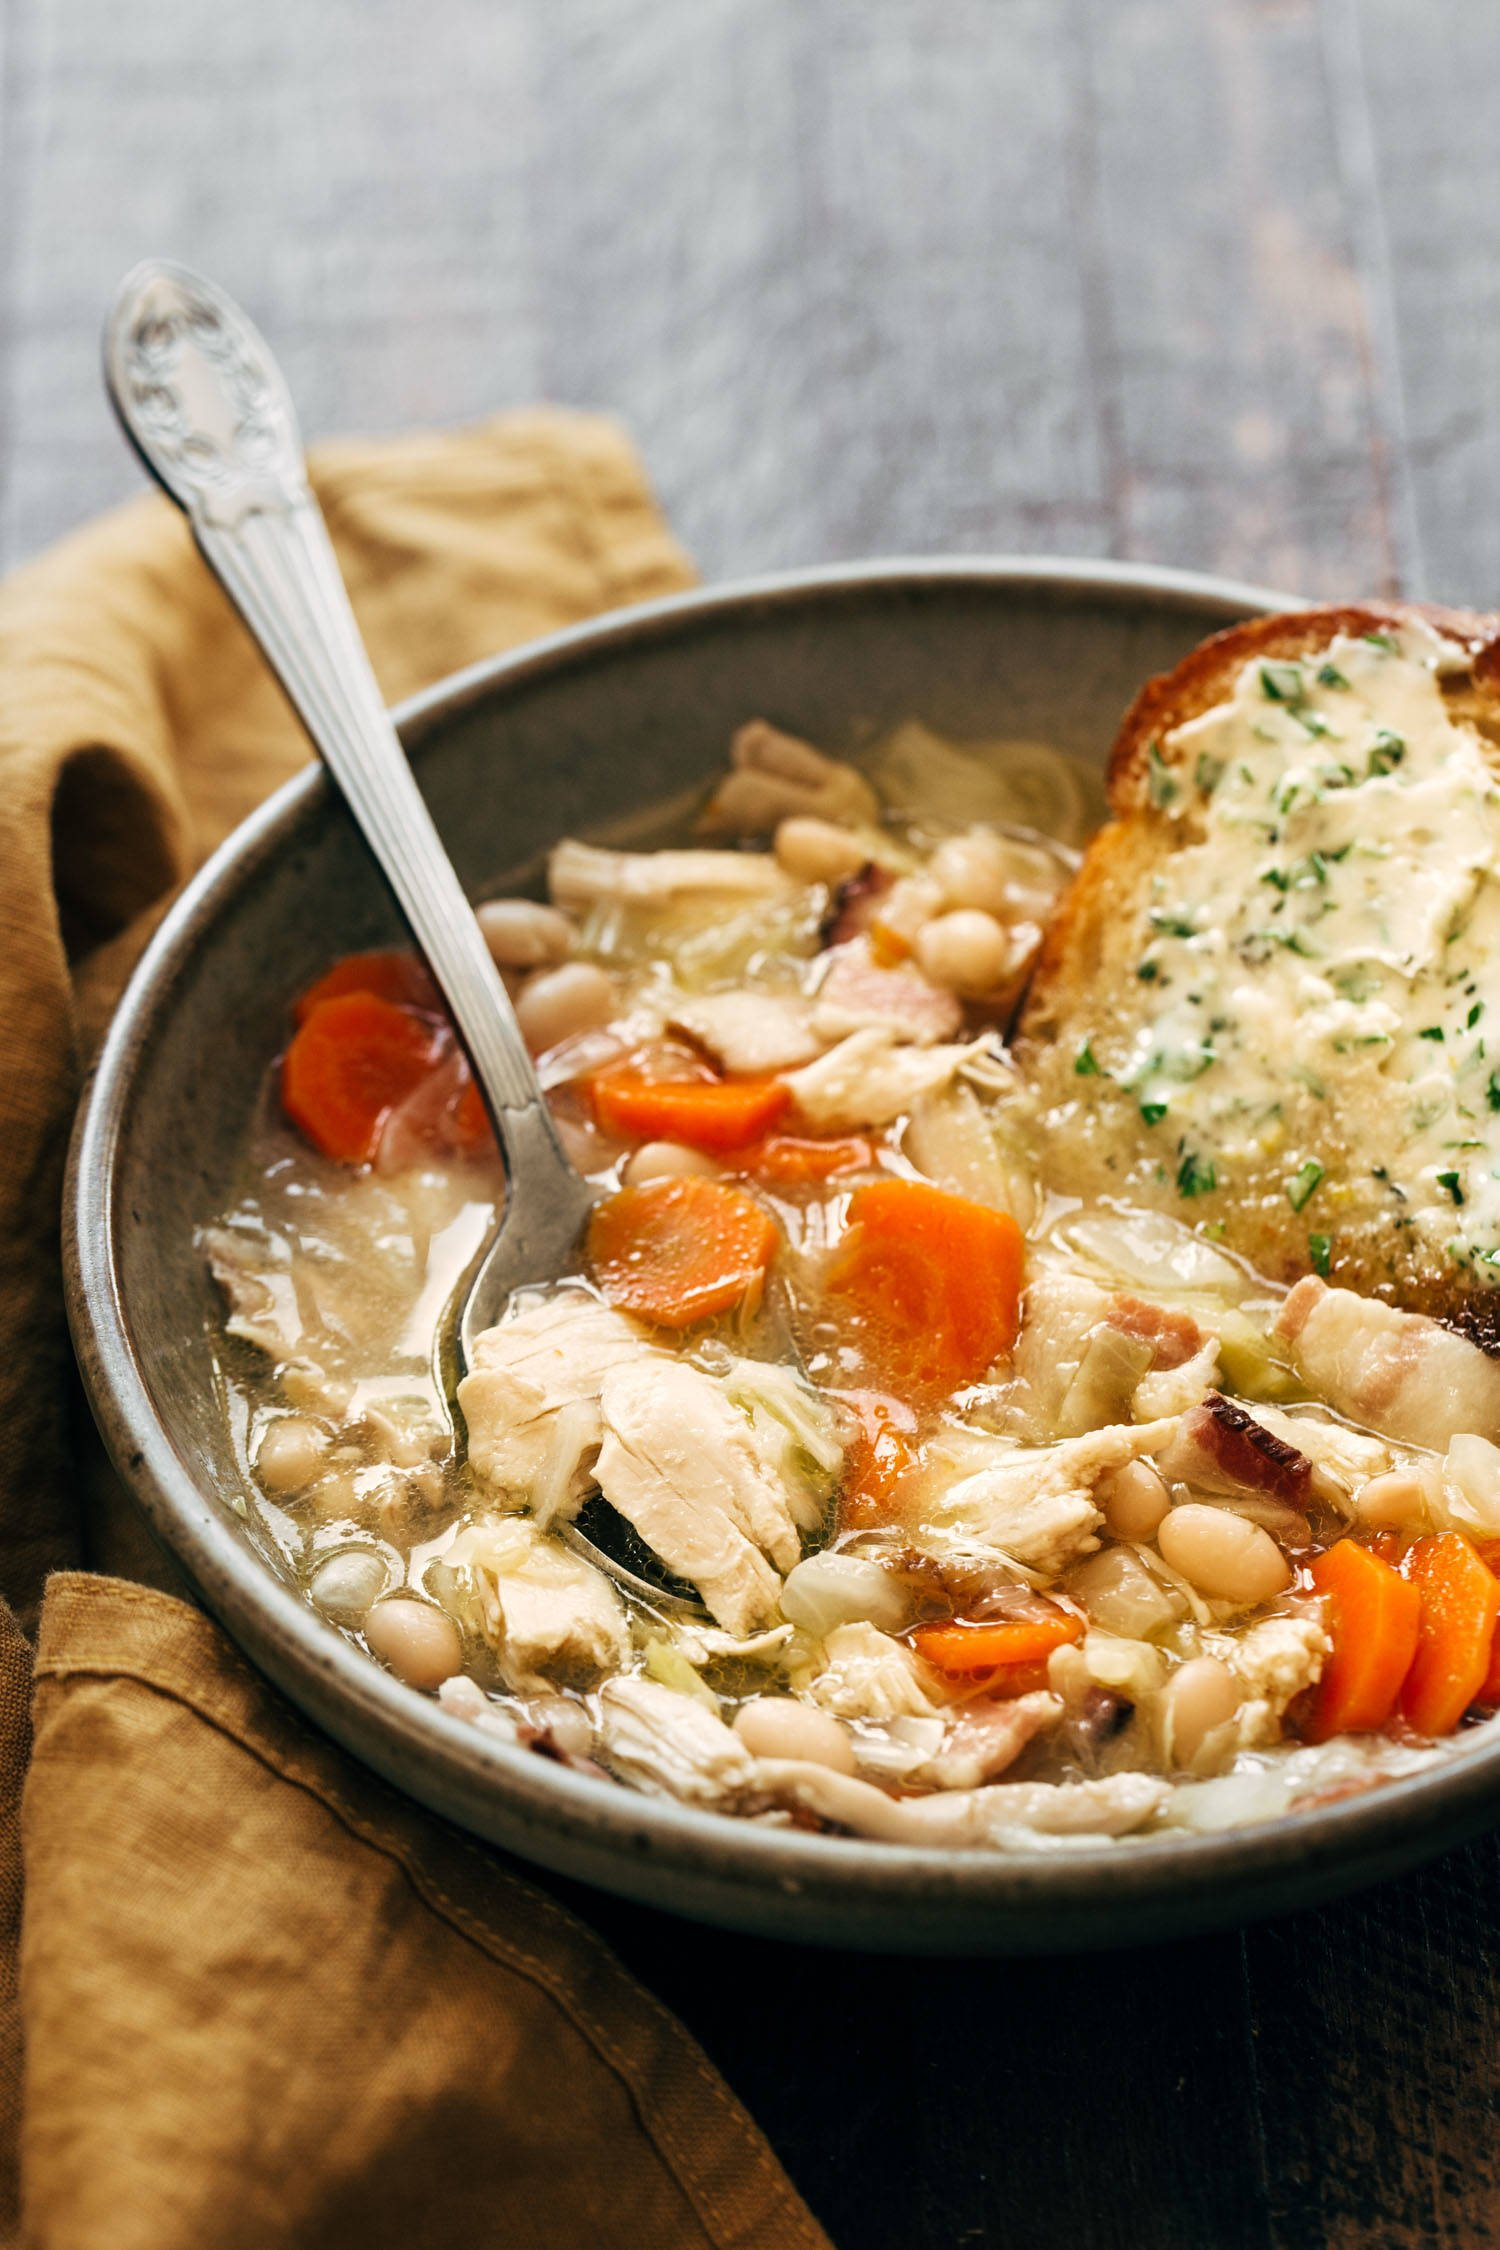 Chicken stew in a bowl with a spoon.